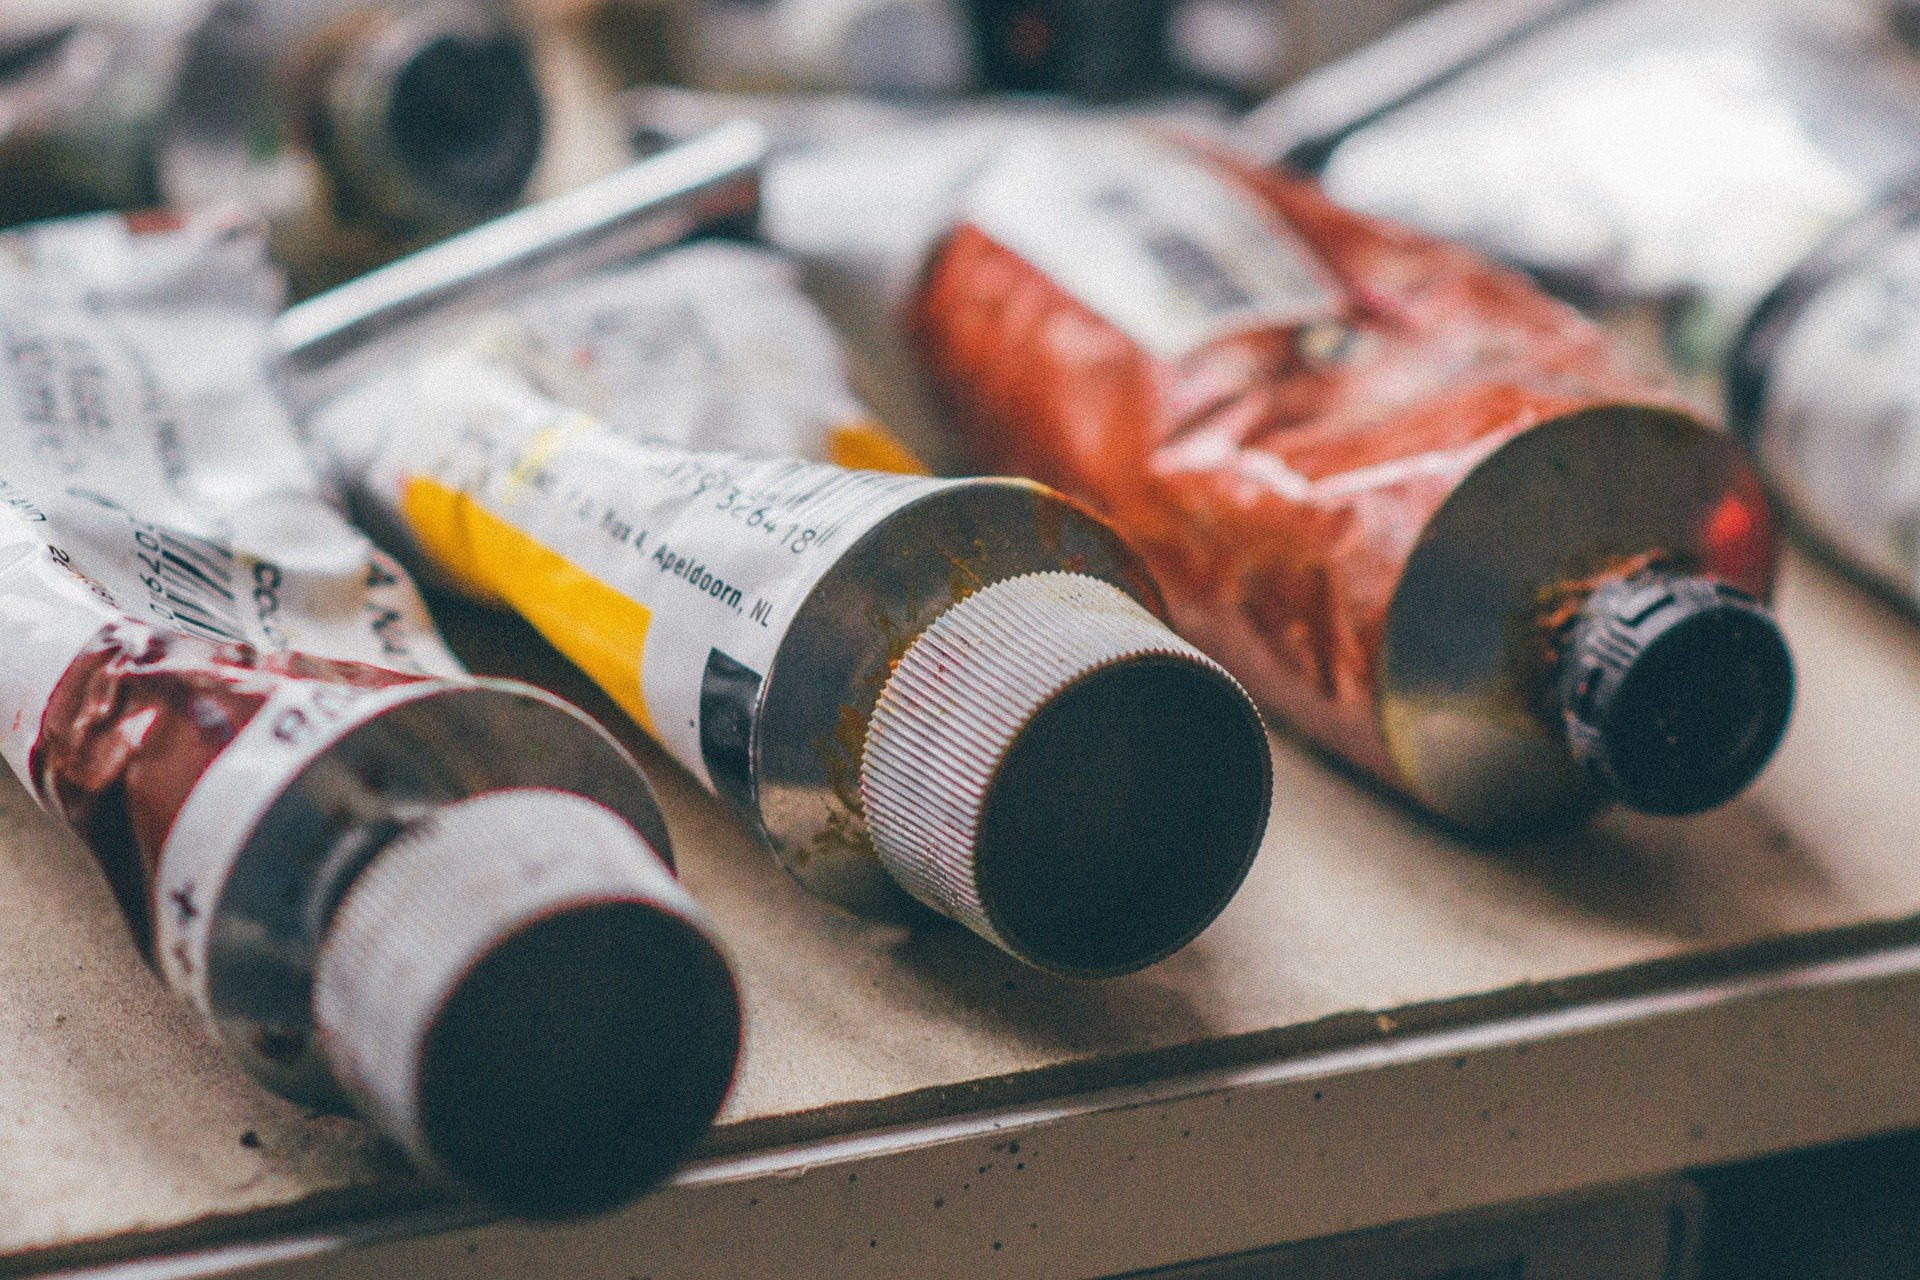 Paint supplies. | Source: Pixabay